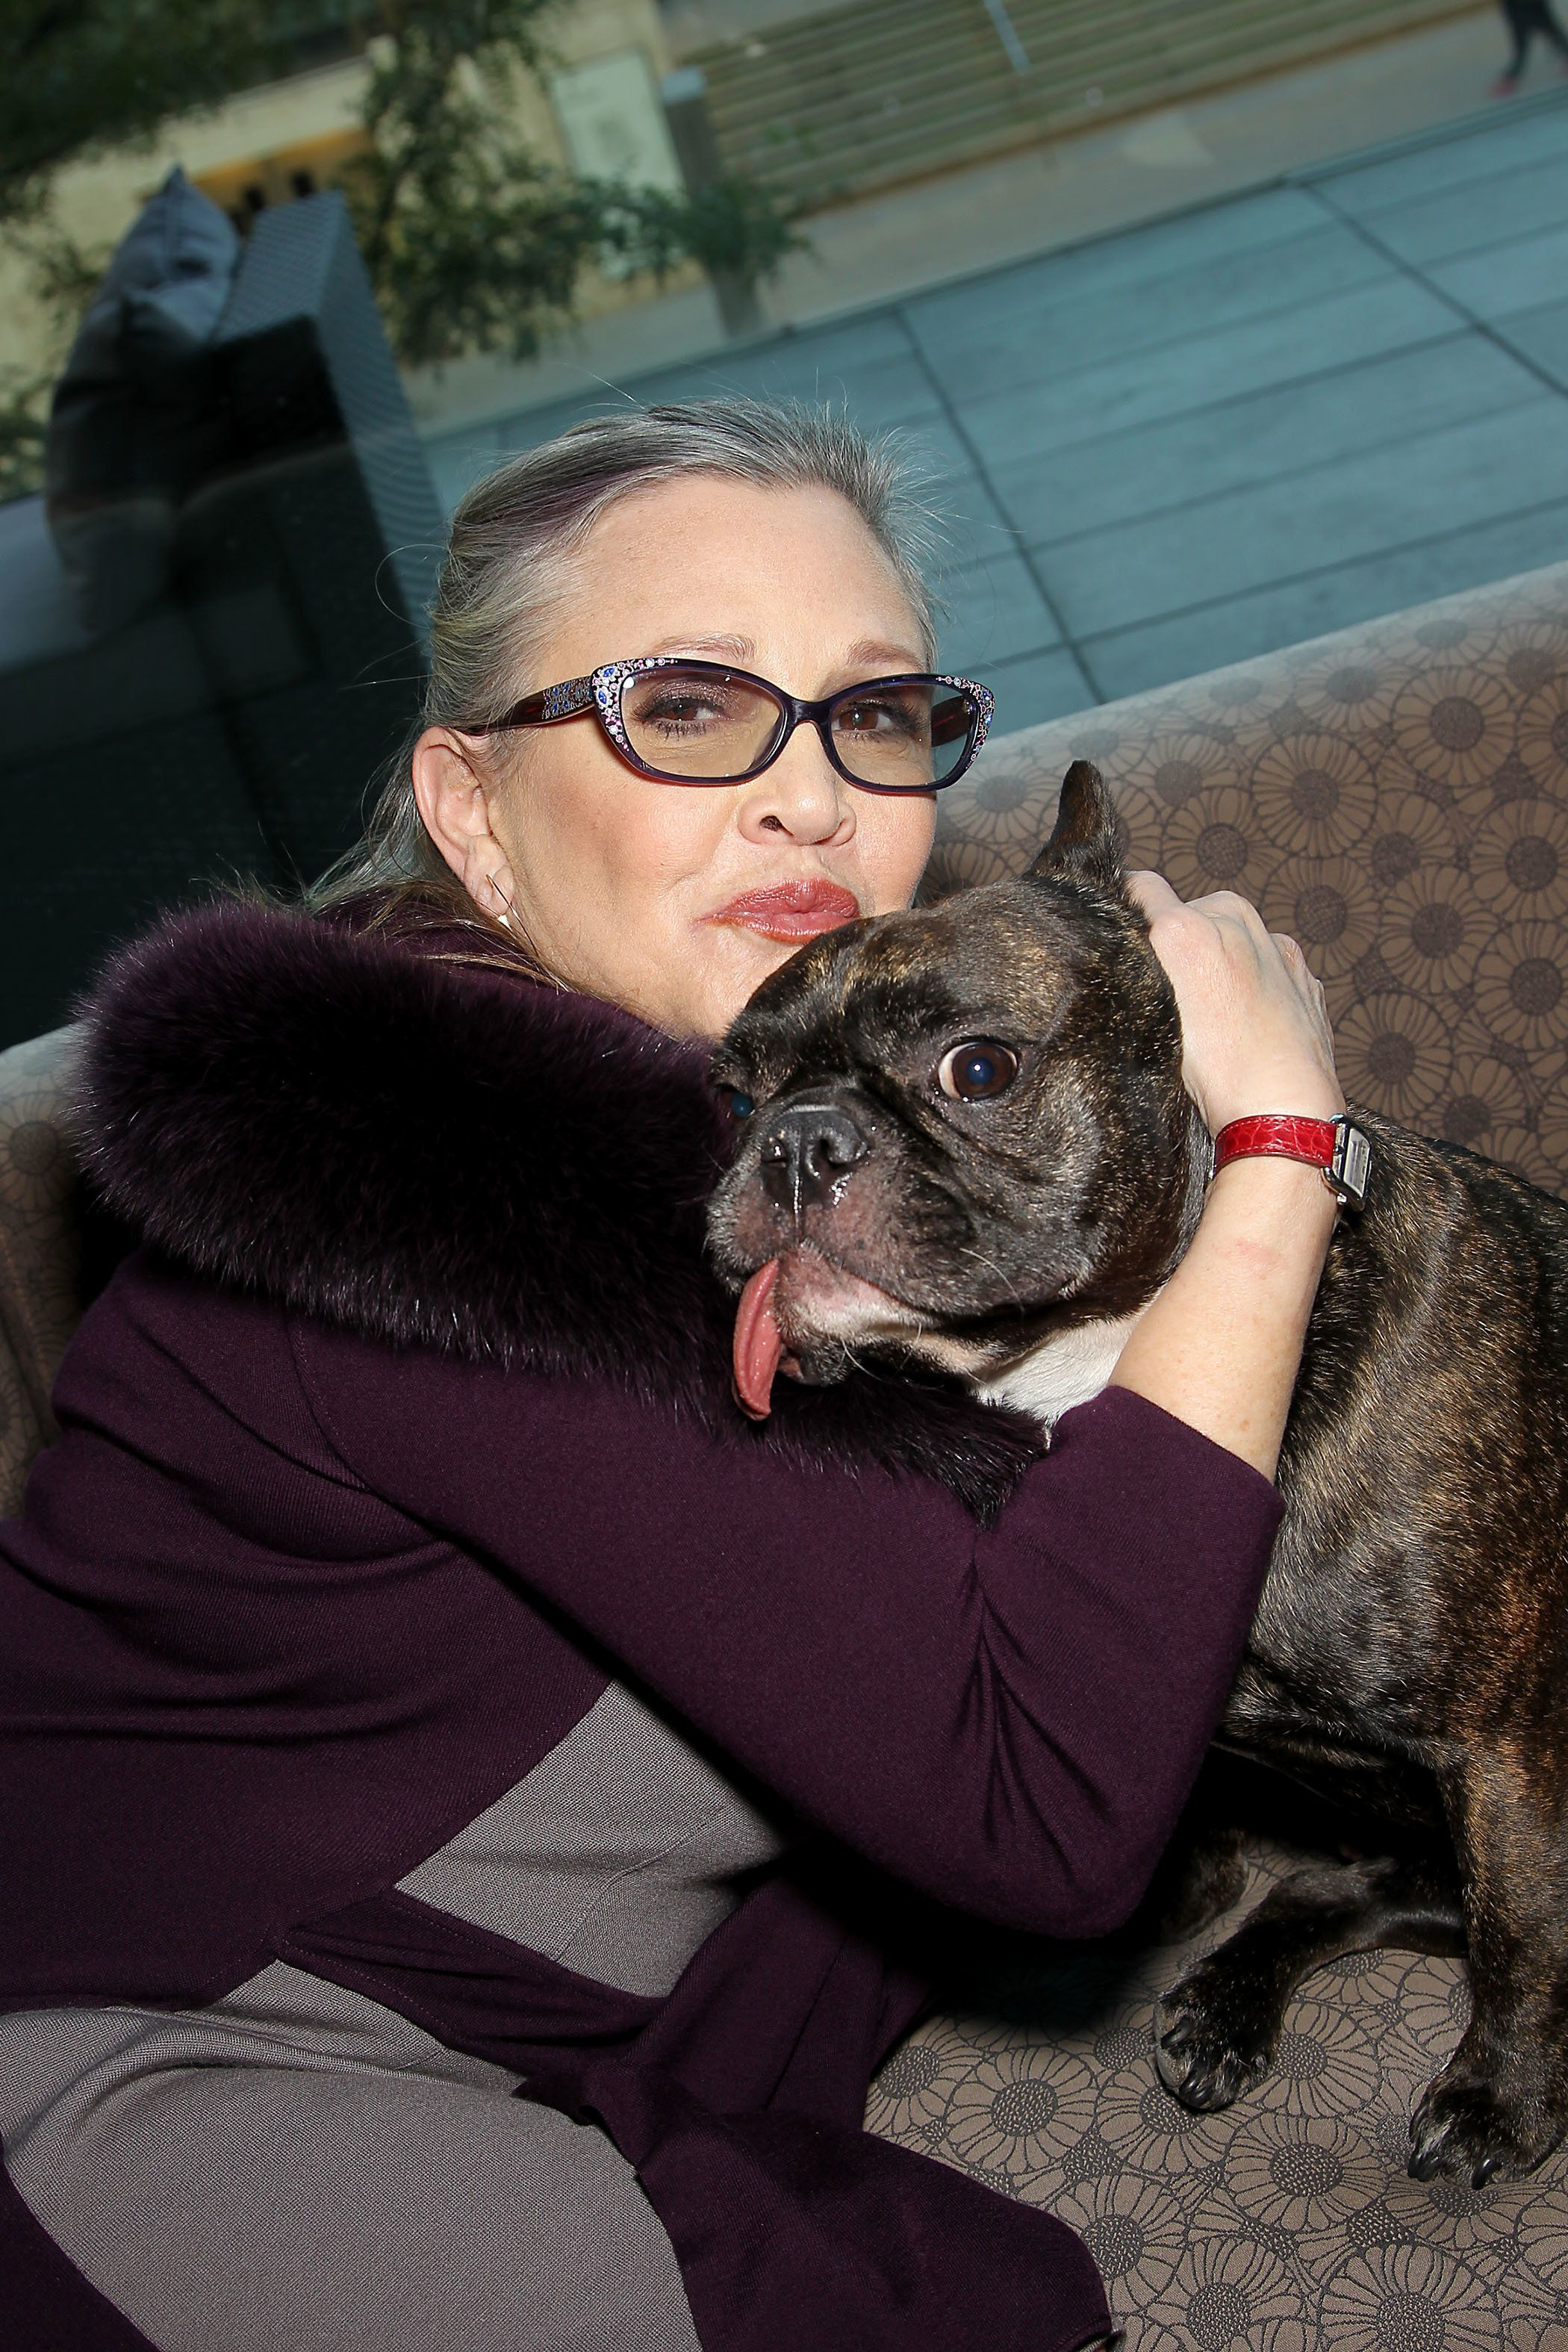 'Star Wars: The Last Jedi' Director Confirms Carrie Fisher's Dog Gary Fisher Has A